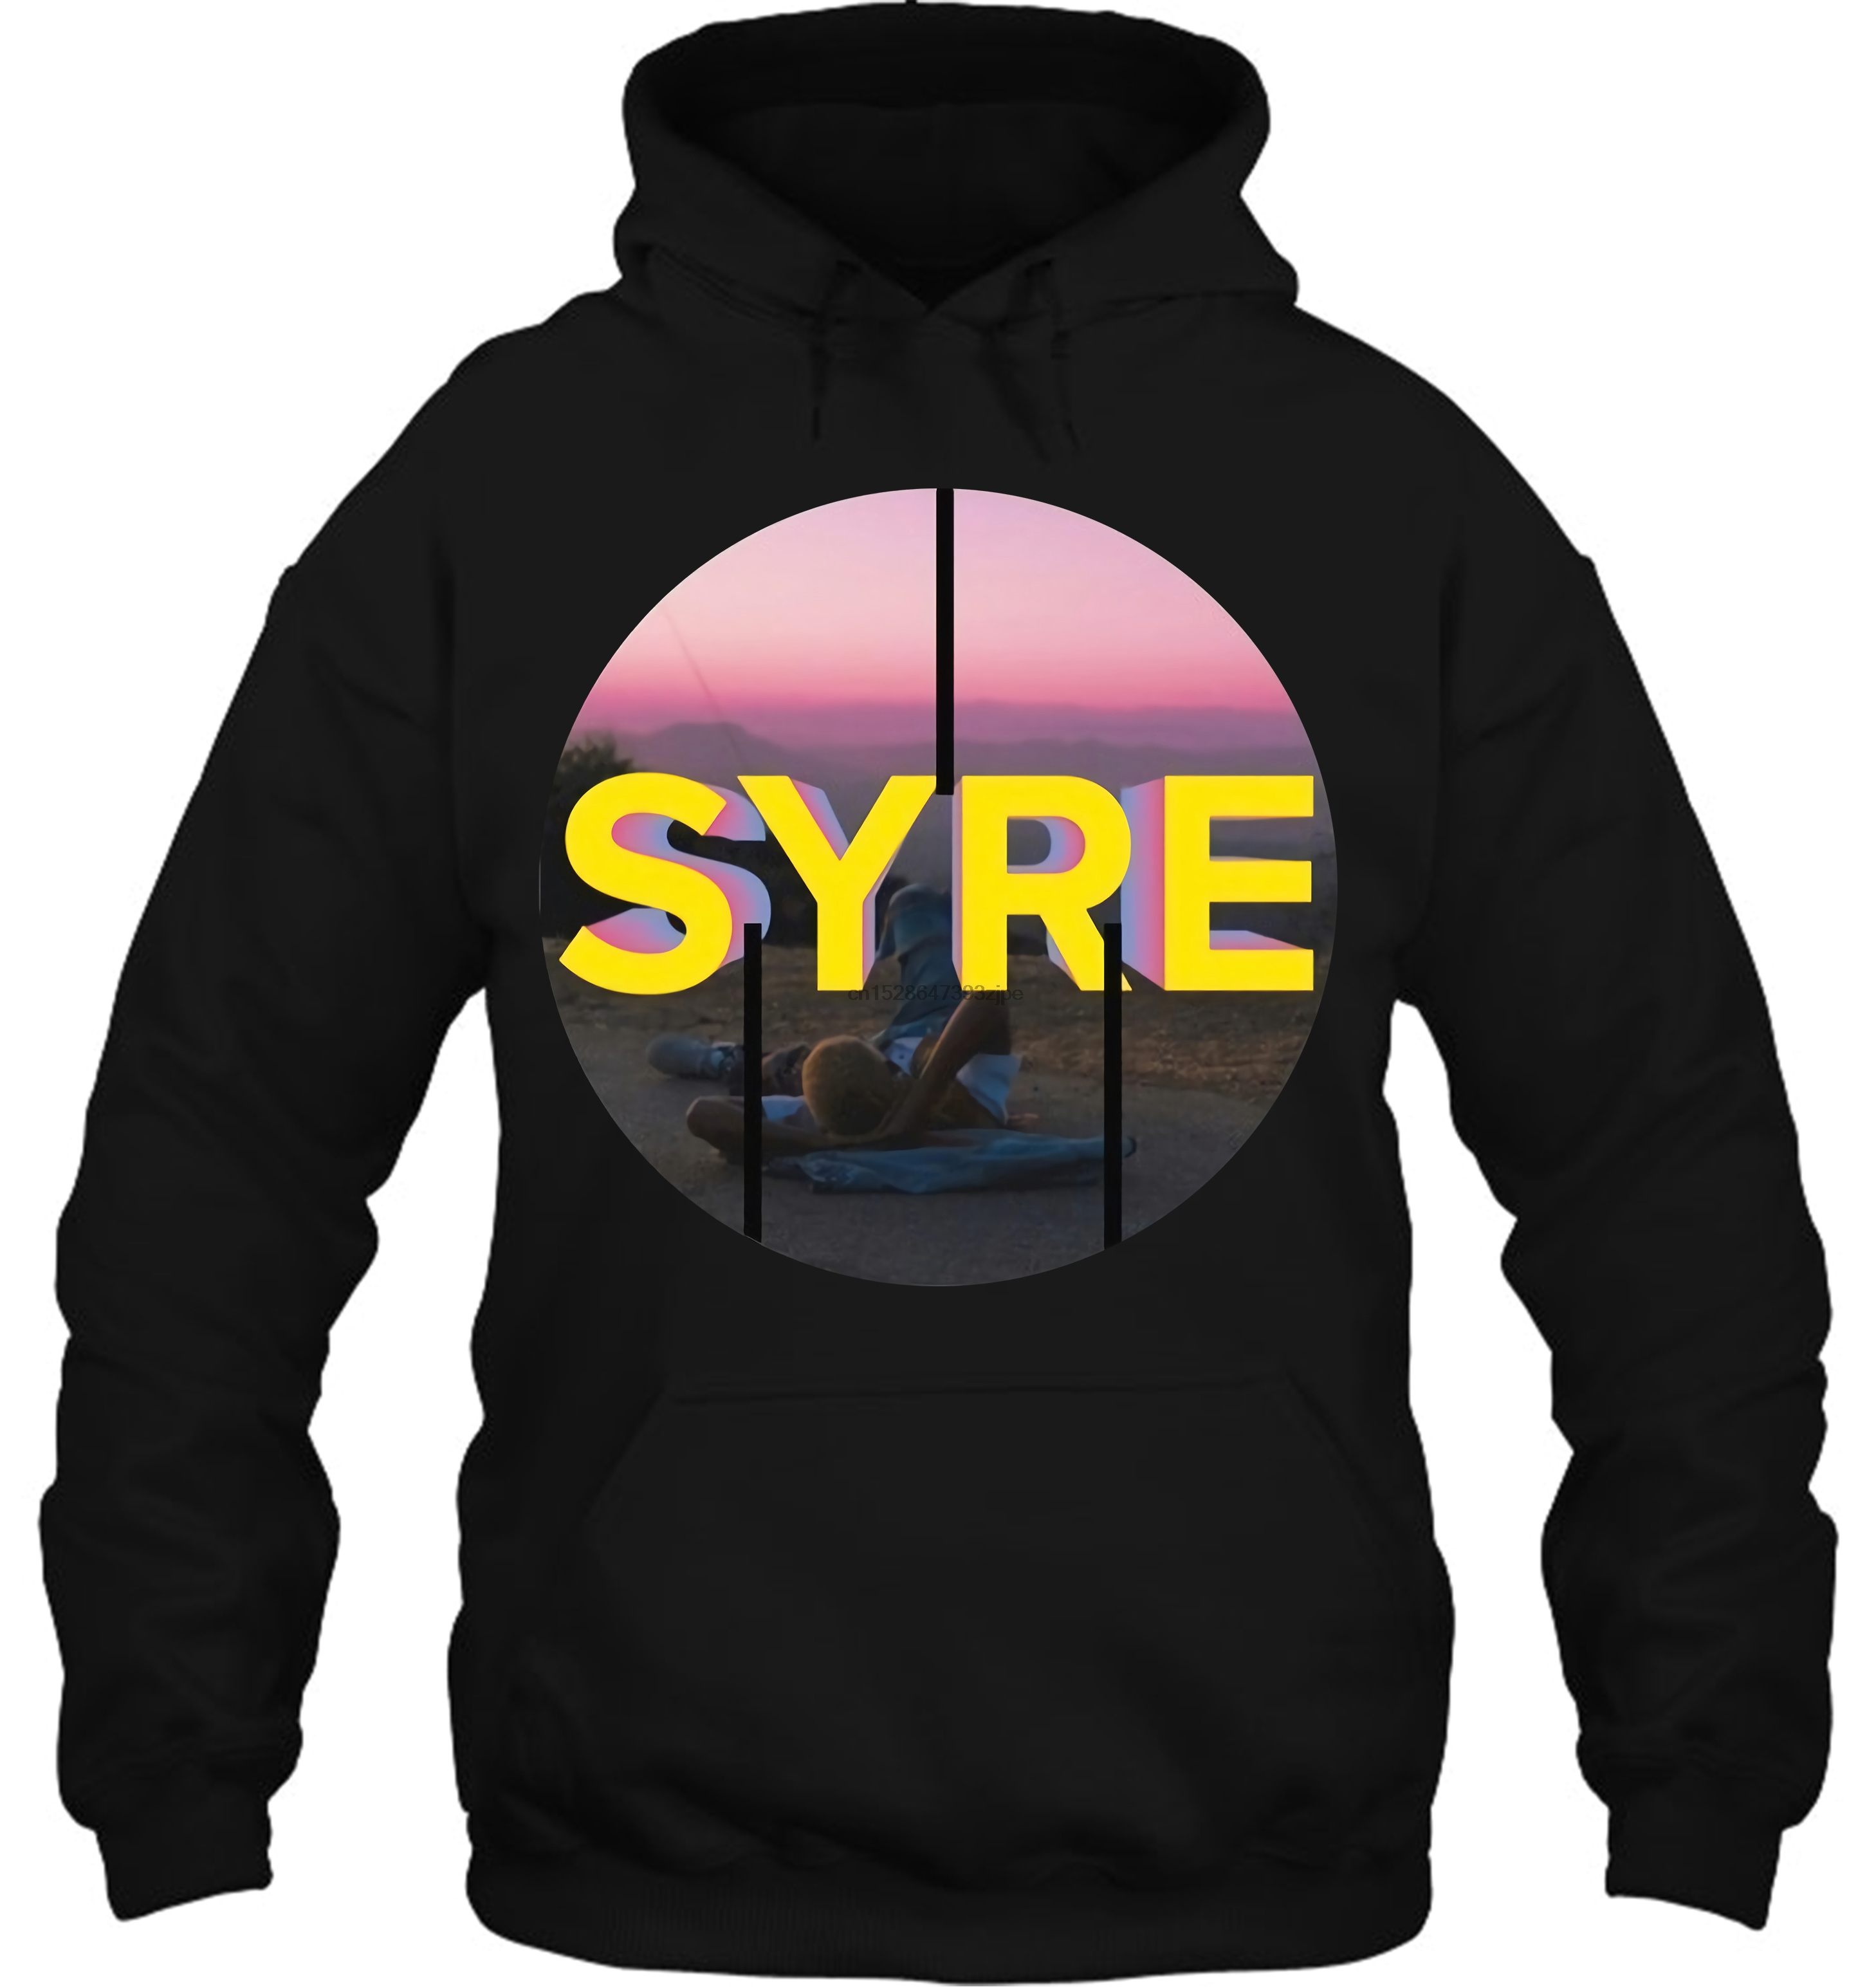 Jaden Smith Syre Streetwear Men Women Hoodies Sweatshirts